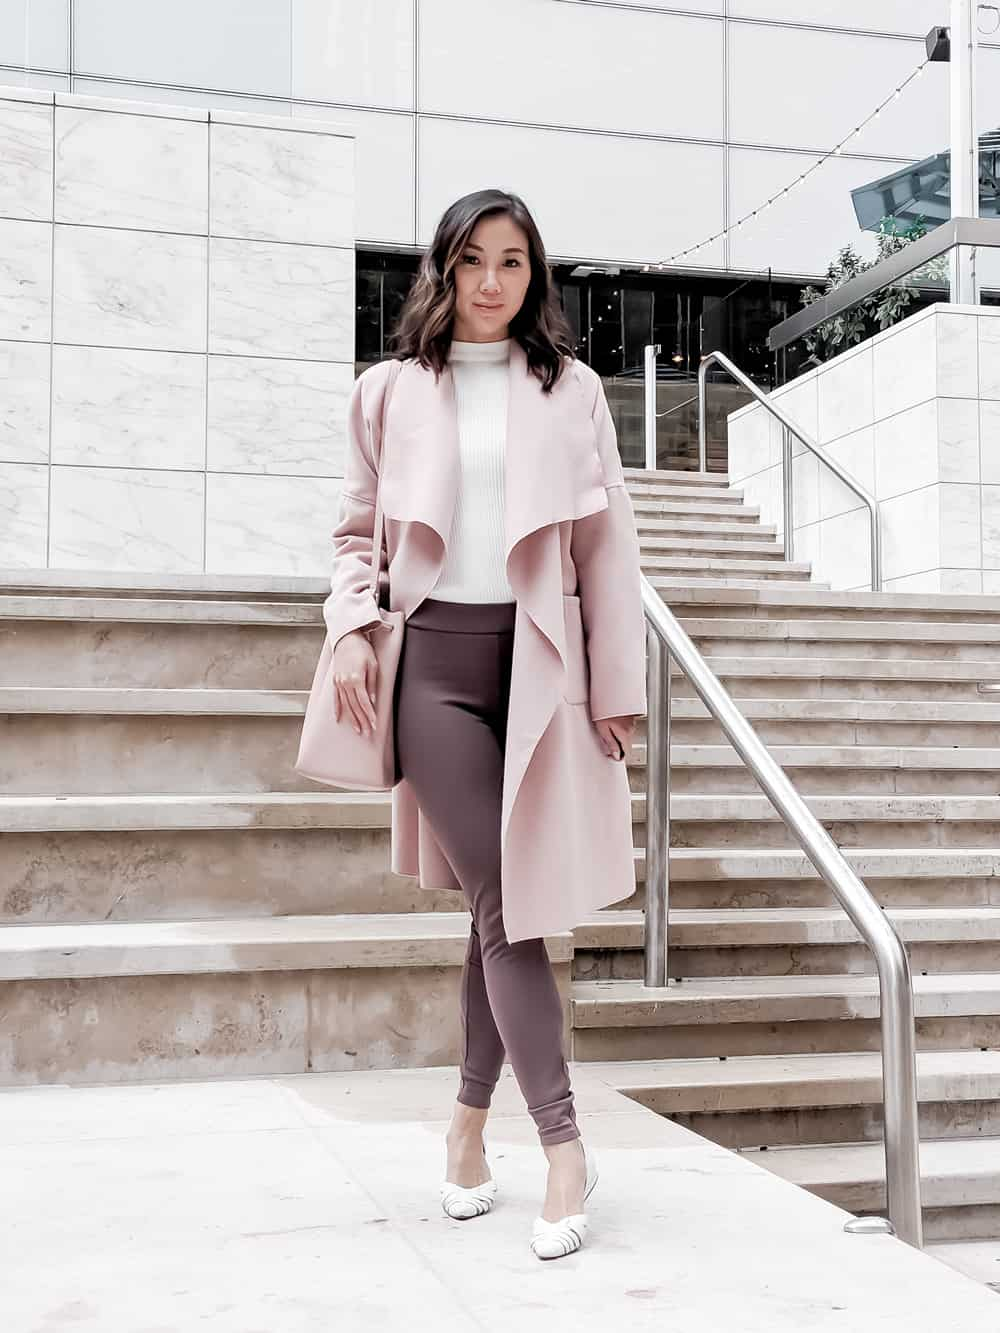 Toronto Style Blogger - YesMissy, Fall / Winter layered look with pink waterfall coat, white sweater le